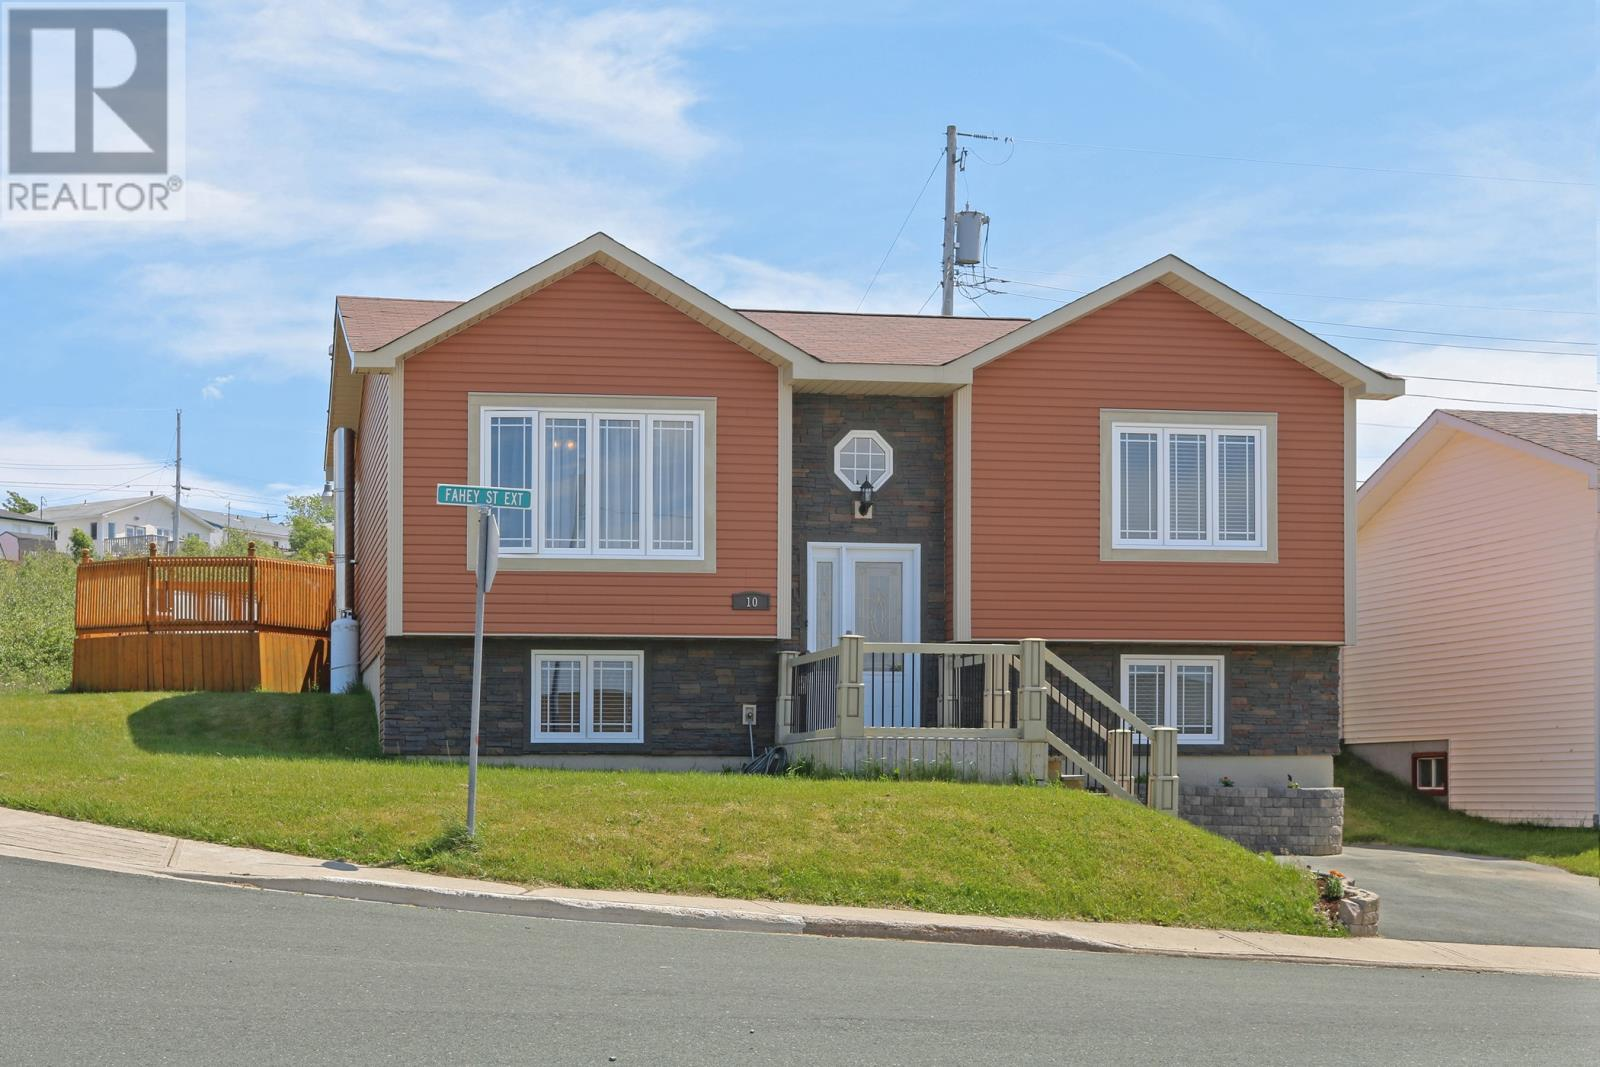 Removed: 10 Fahey Street Extension, St Johns, NL - Removed on 2018-11-27 04:45:06